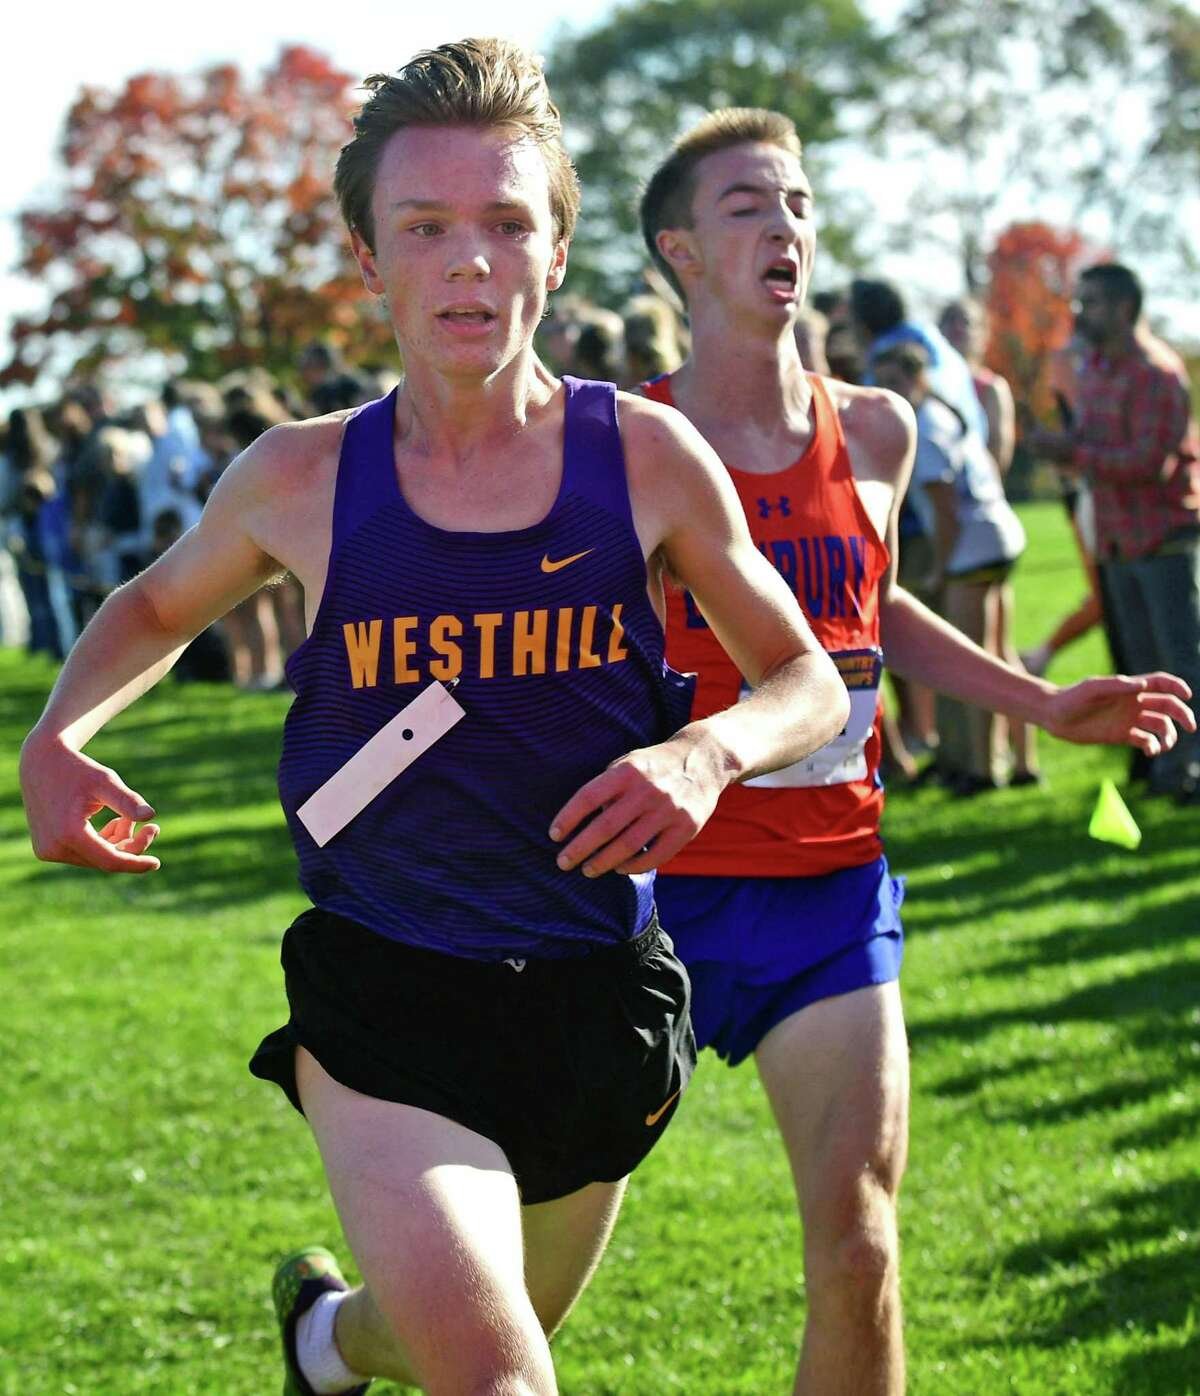 Westhill's Colin McLaughlin barley beats out Danbury's Jack Watson for seventh place during a meet in 2019.